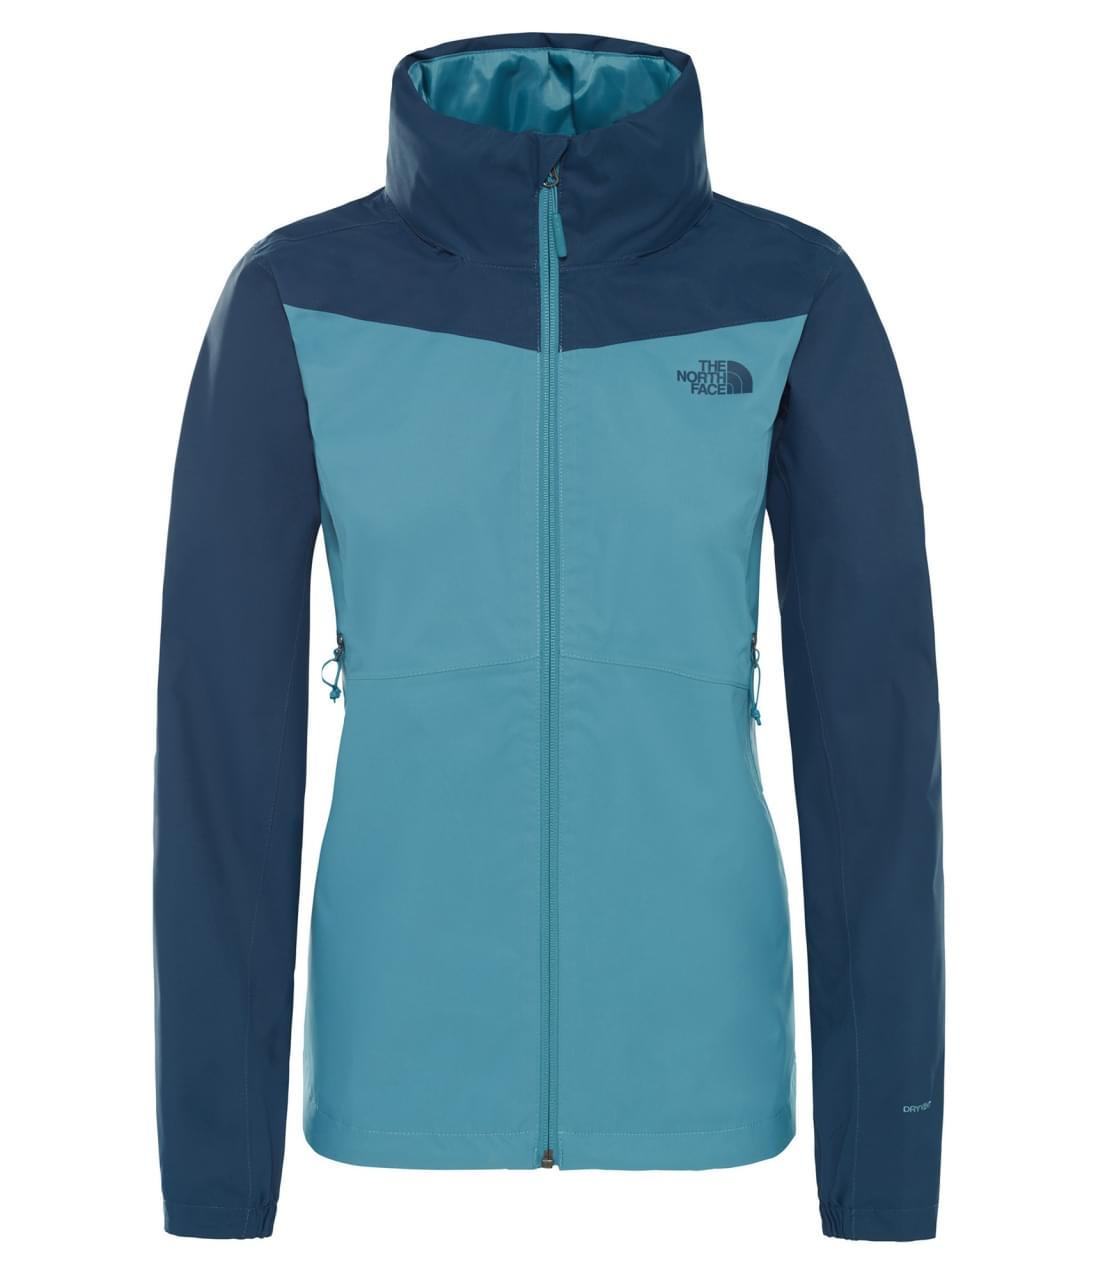 The North Face Resolve Plus Zomerjas Dames